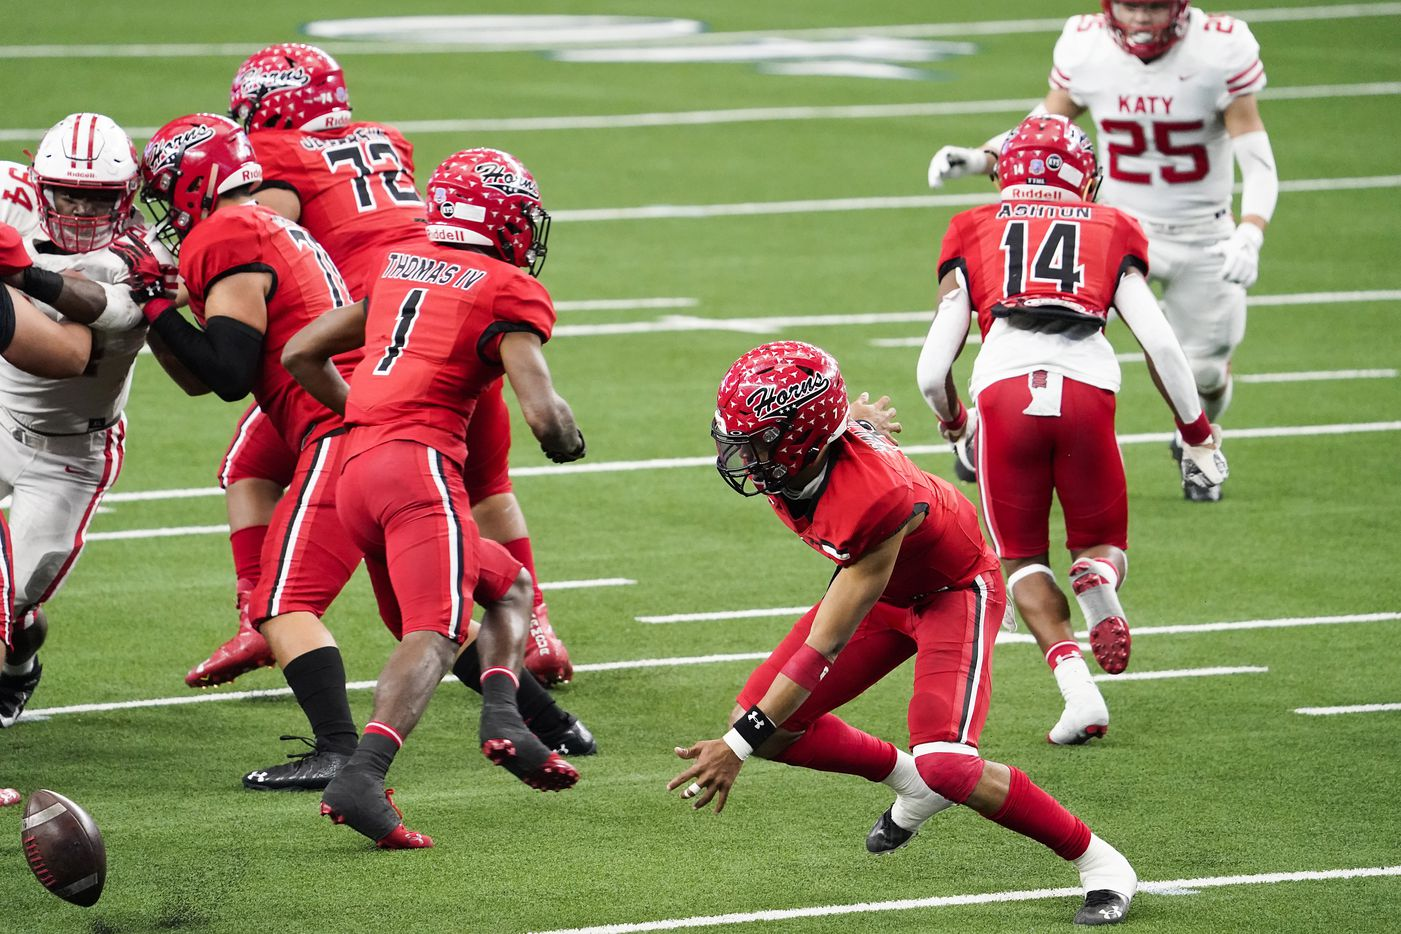 Cedar Hill quarterback Kaidon Salter (7) chases after his own fumble during the first half of the Class 6A Division II state football championship game against Katy at AT&T Stadium on Saturday, Jan. 16, 2021, in Arlington, Texas.